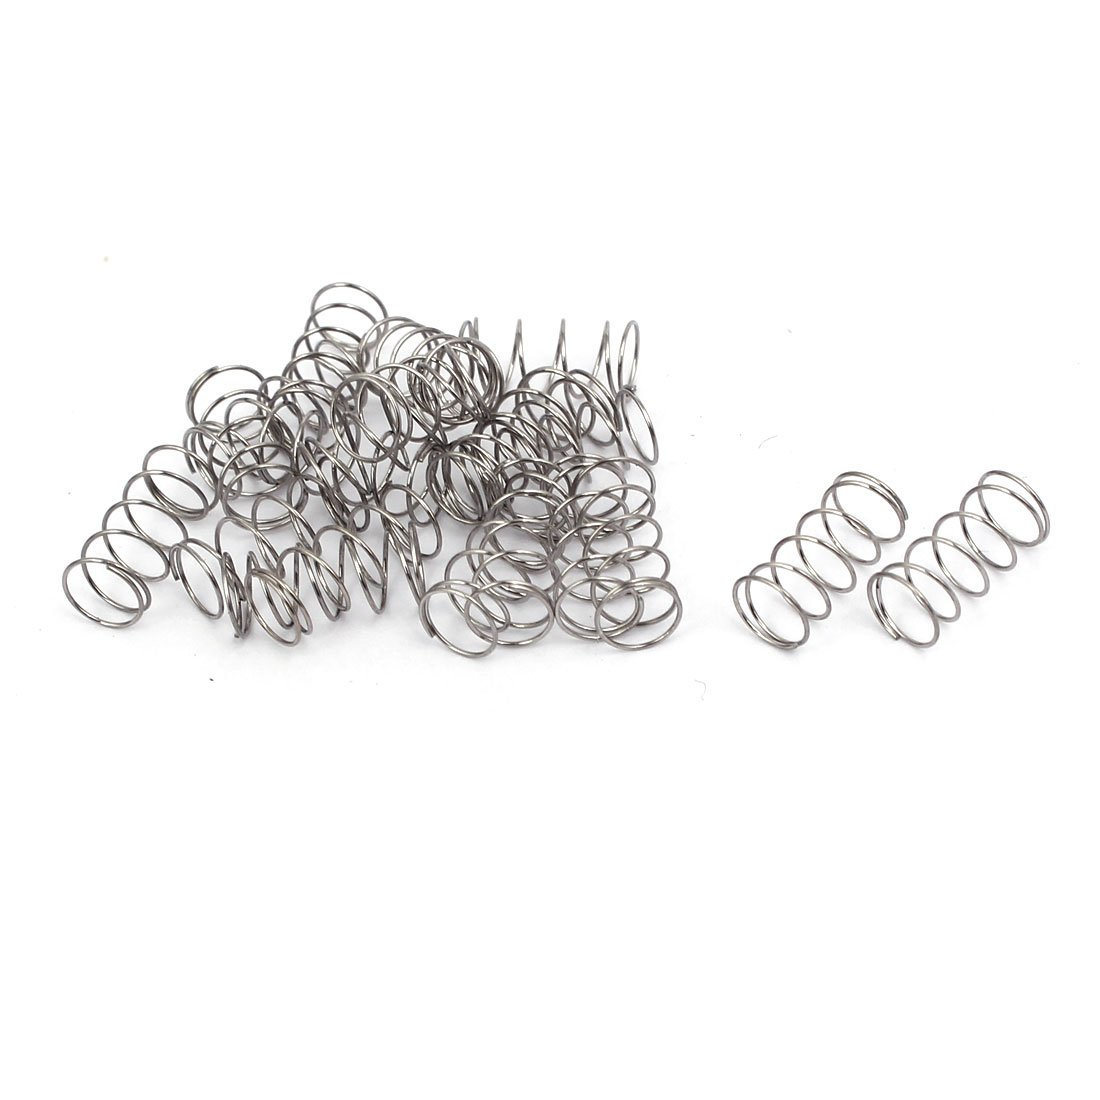 uxcell 0.3mmx5mmx10mm 304 Stainless Steel Compression Springs Silver Tone 20pcs